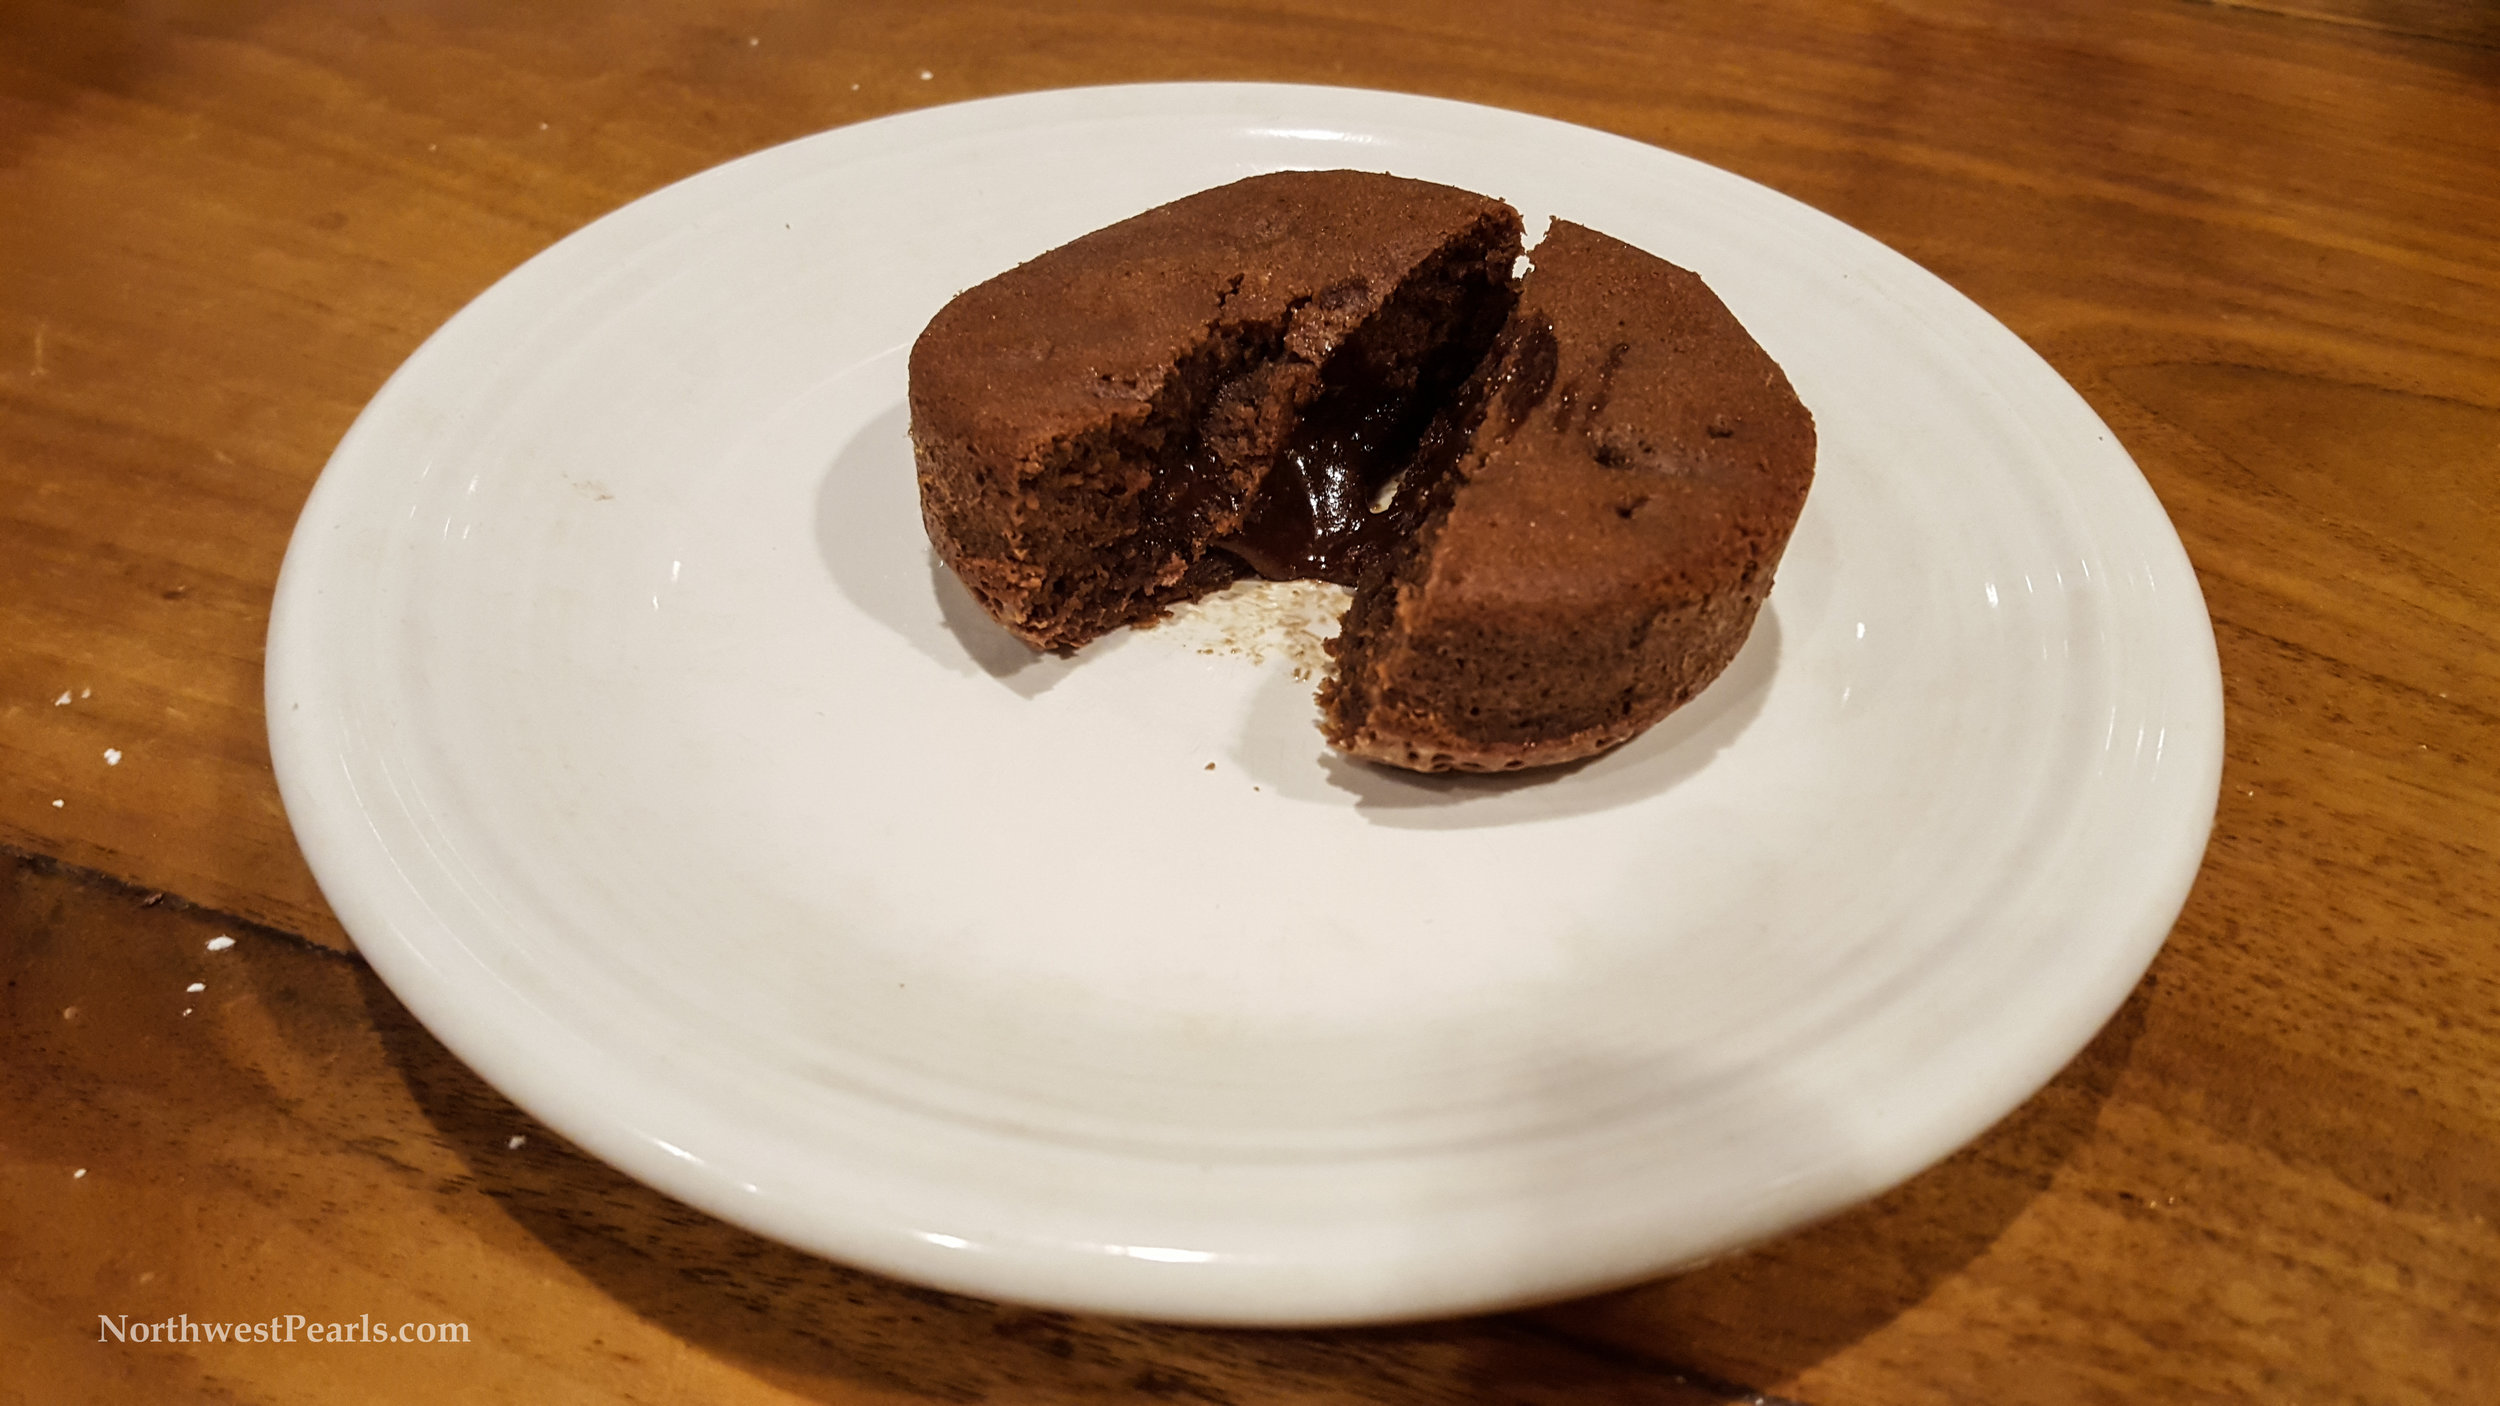 Northwest Pearls: Molten Chocolate Cake